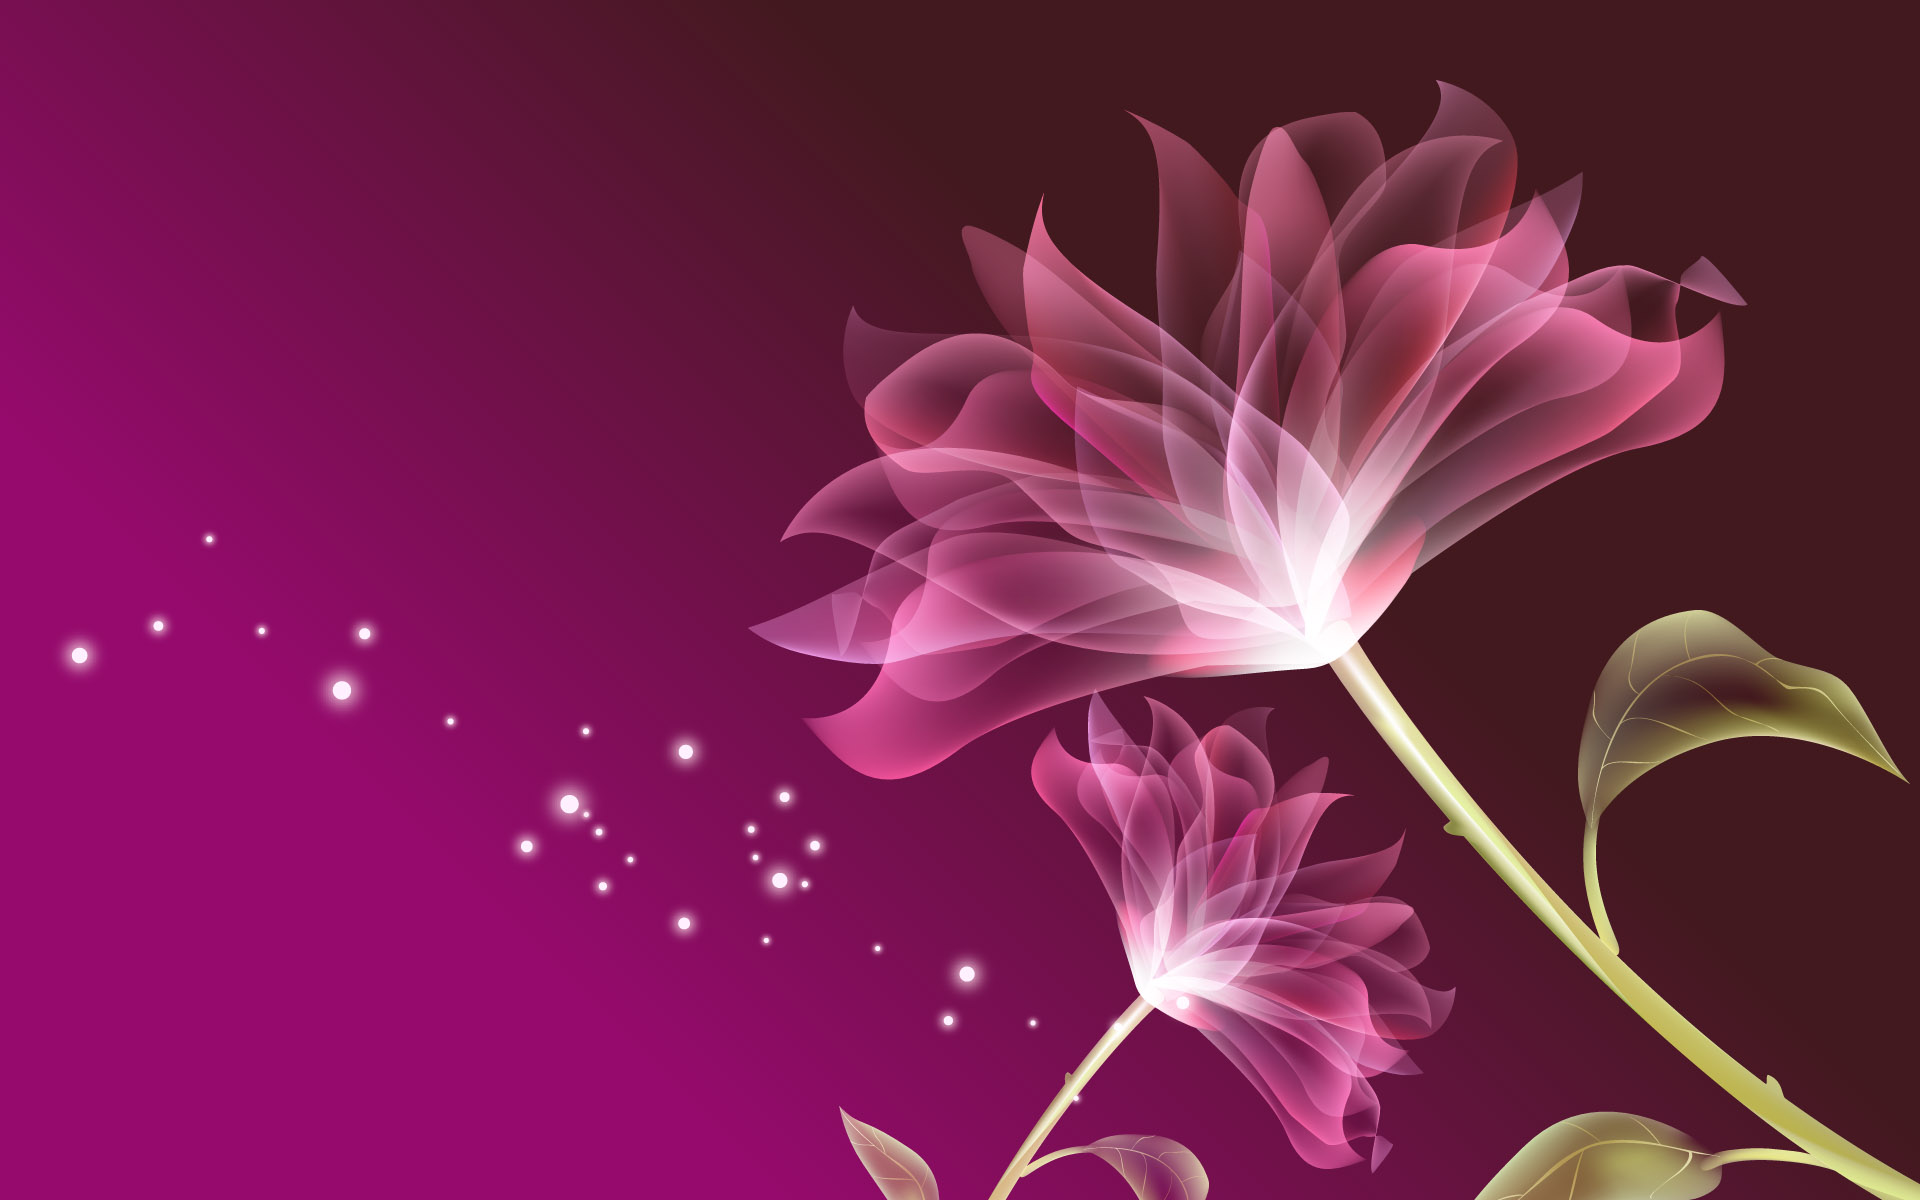 Pink Flowers 3D Wallpaper Background 1920x1200